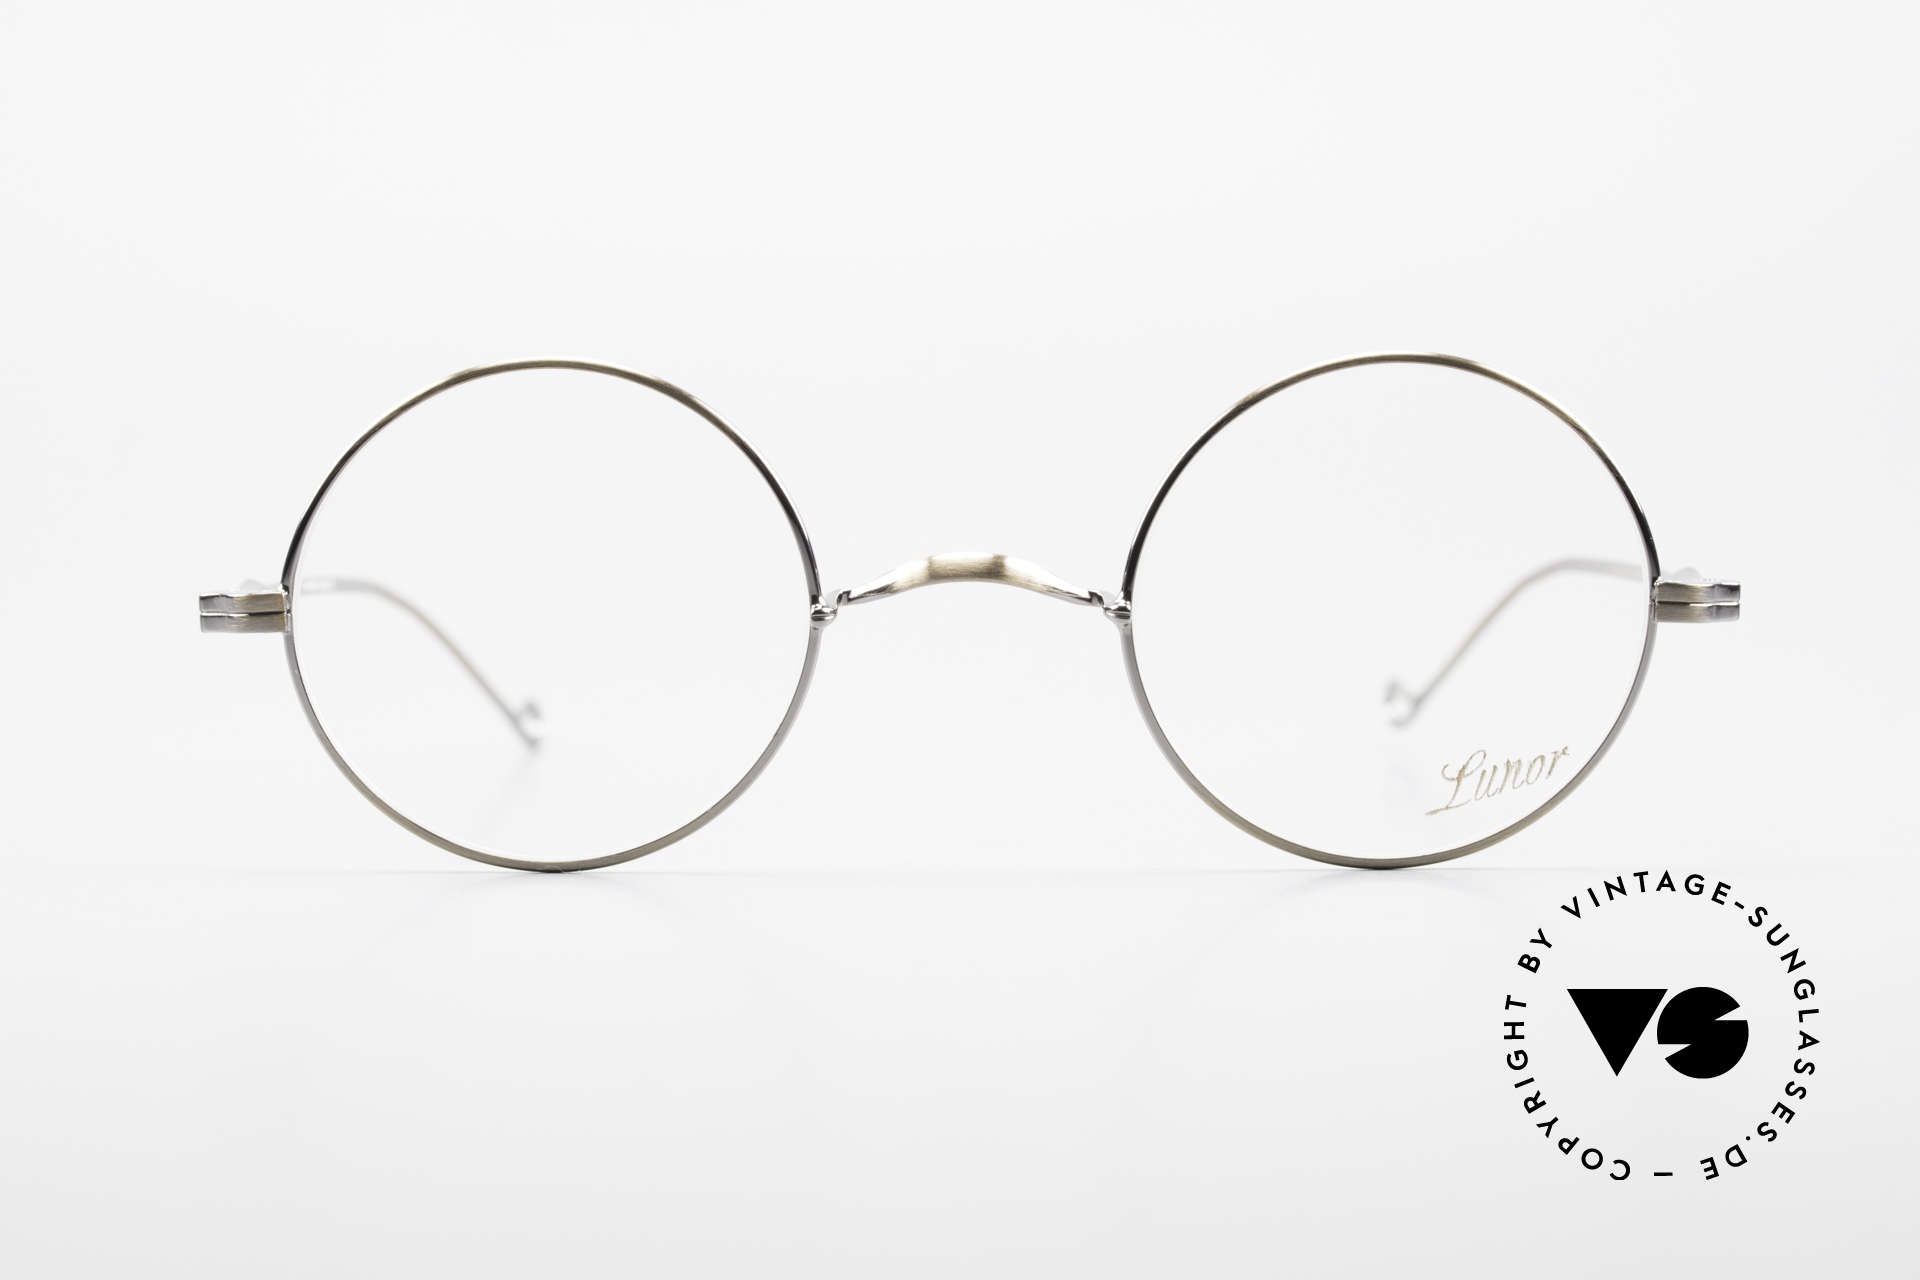 """Lunor II 23 Round Lunor Eyeglass-Frame, full rim metal frame with noble """"antique gold"""" finish, Made for Men and Women"""